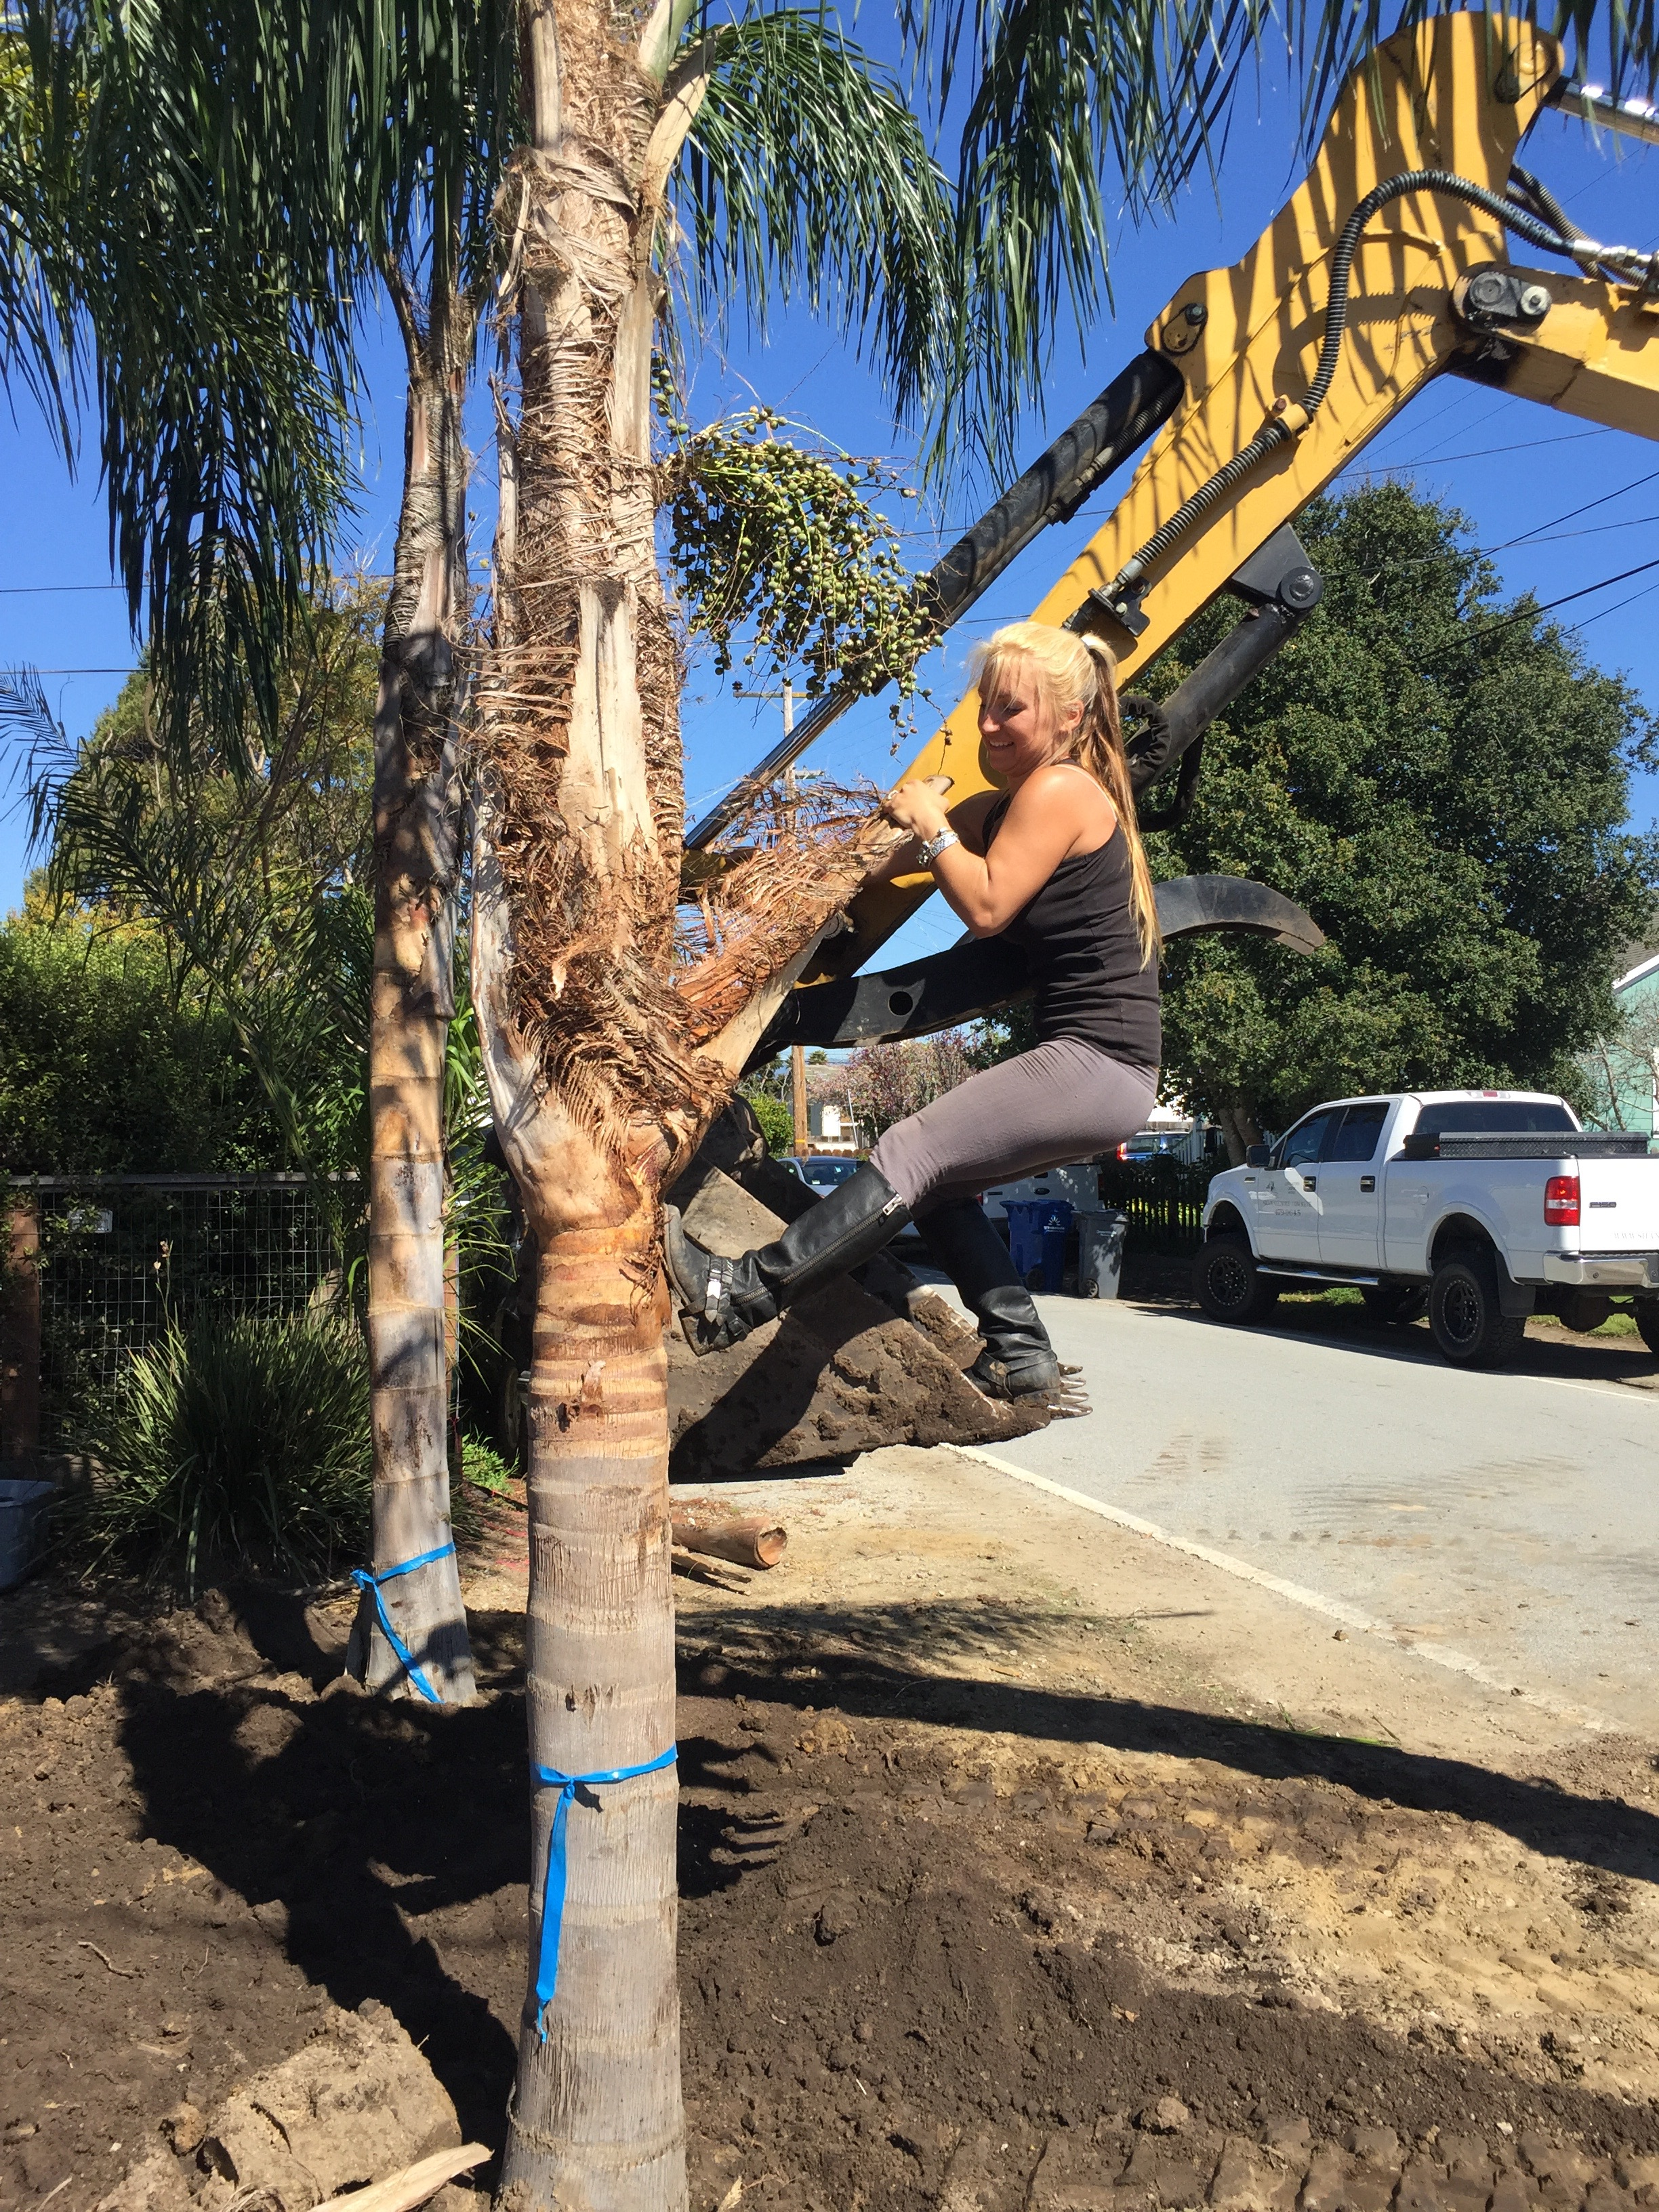 Yes, I actually helped the backhoe driver carefully place all of the mature palms to the inch, and level them.